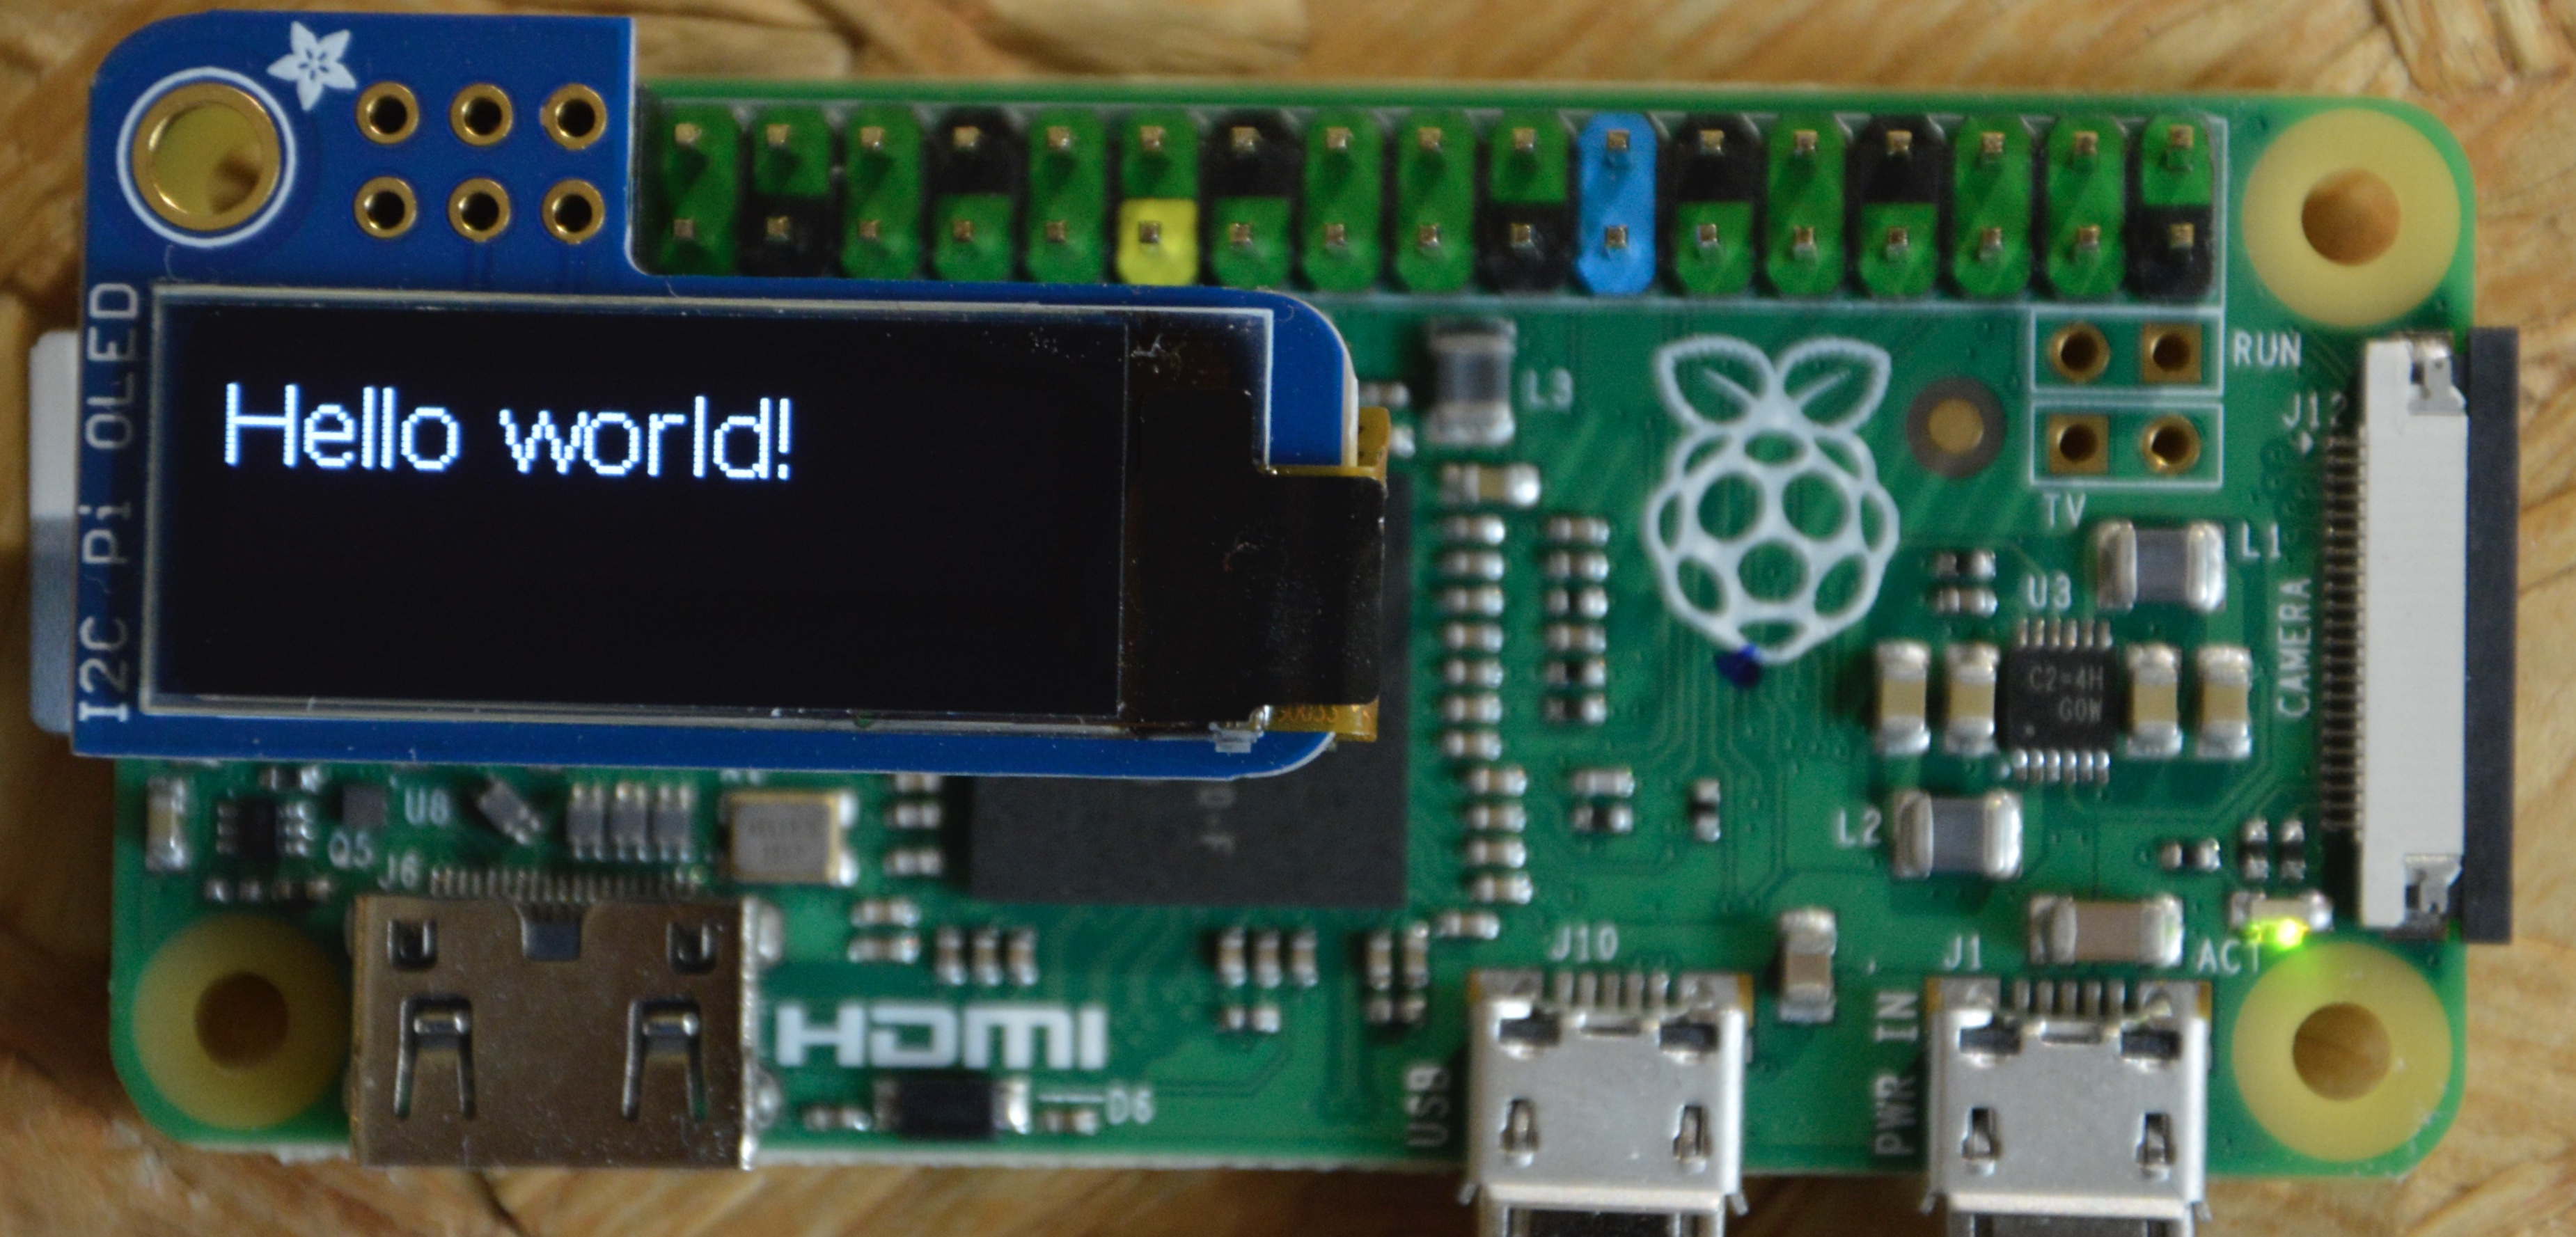 """Image of Raspberry Pi with PiOLED connected to it on which """"Hello world!"""" is visible"""